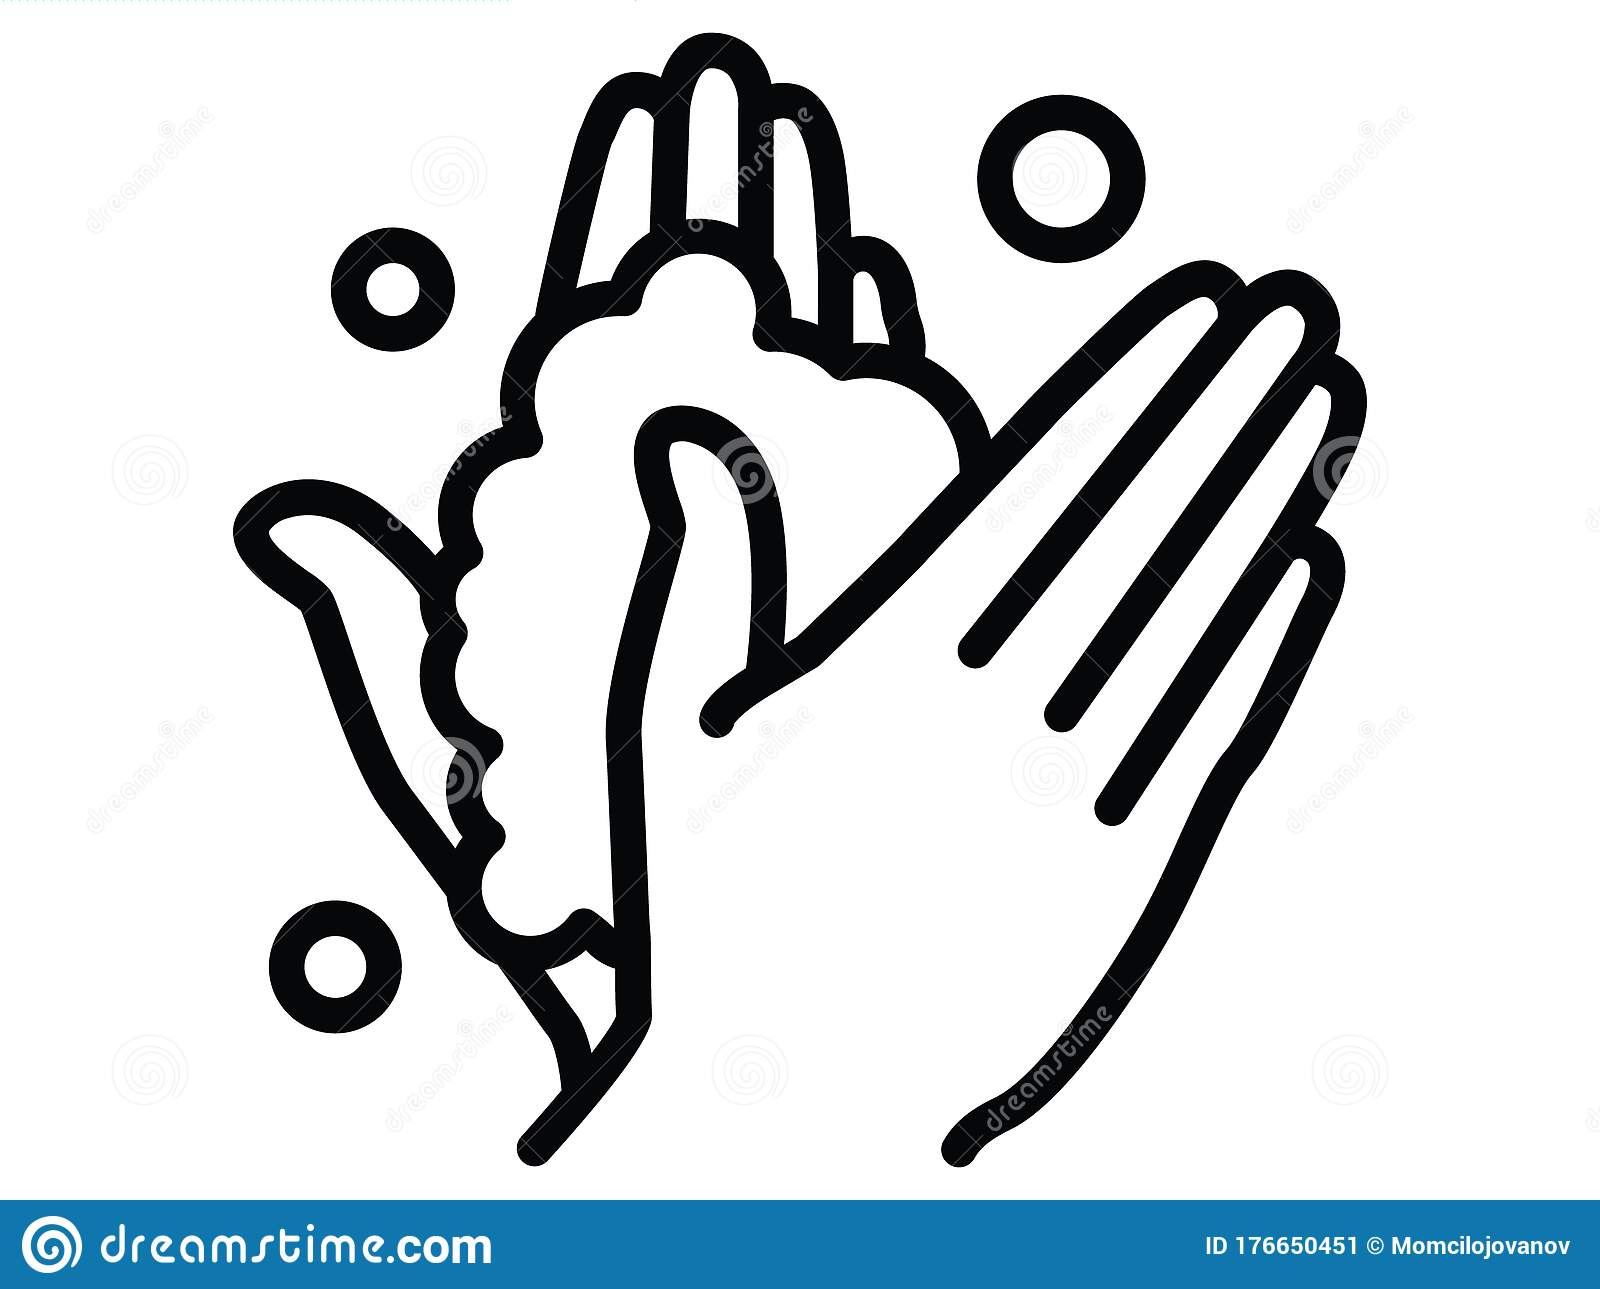 ᐈ Child washing hands stock pictures, Royalty Free child washing hands  images | download on Depositphotos®